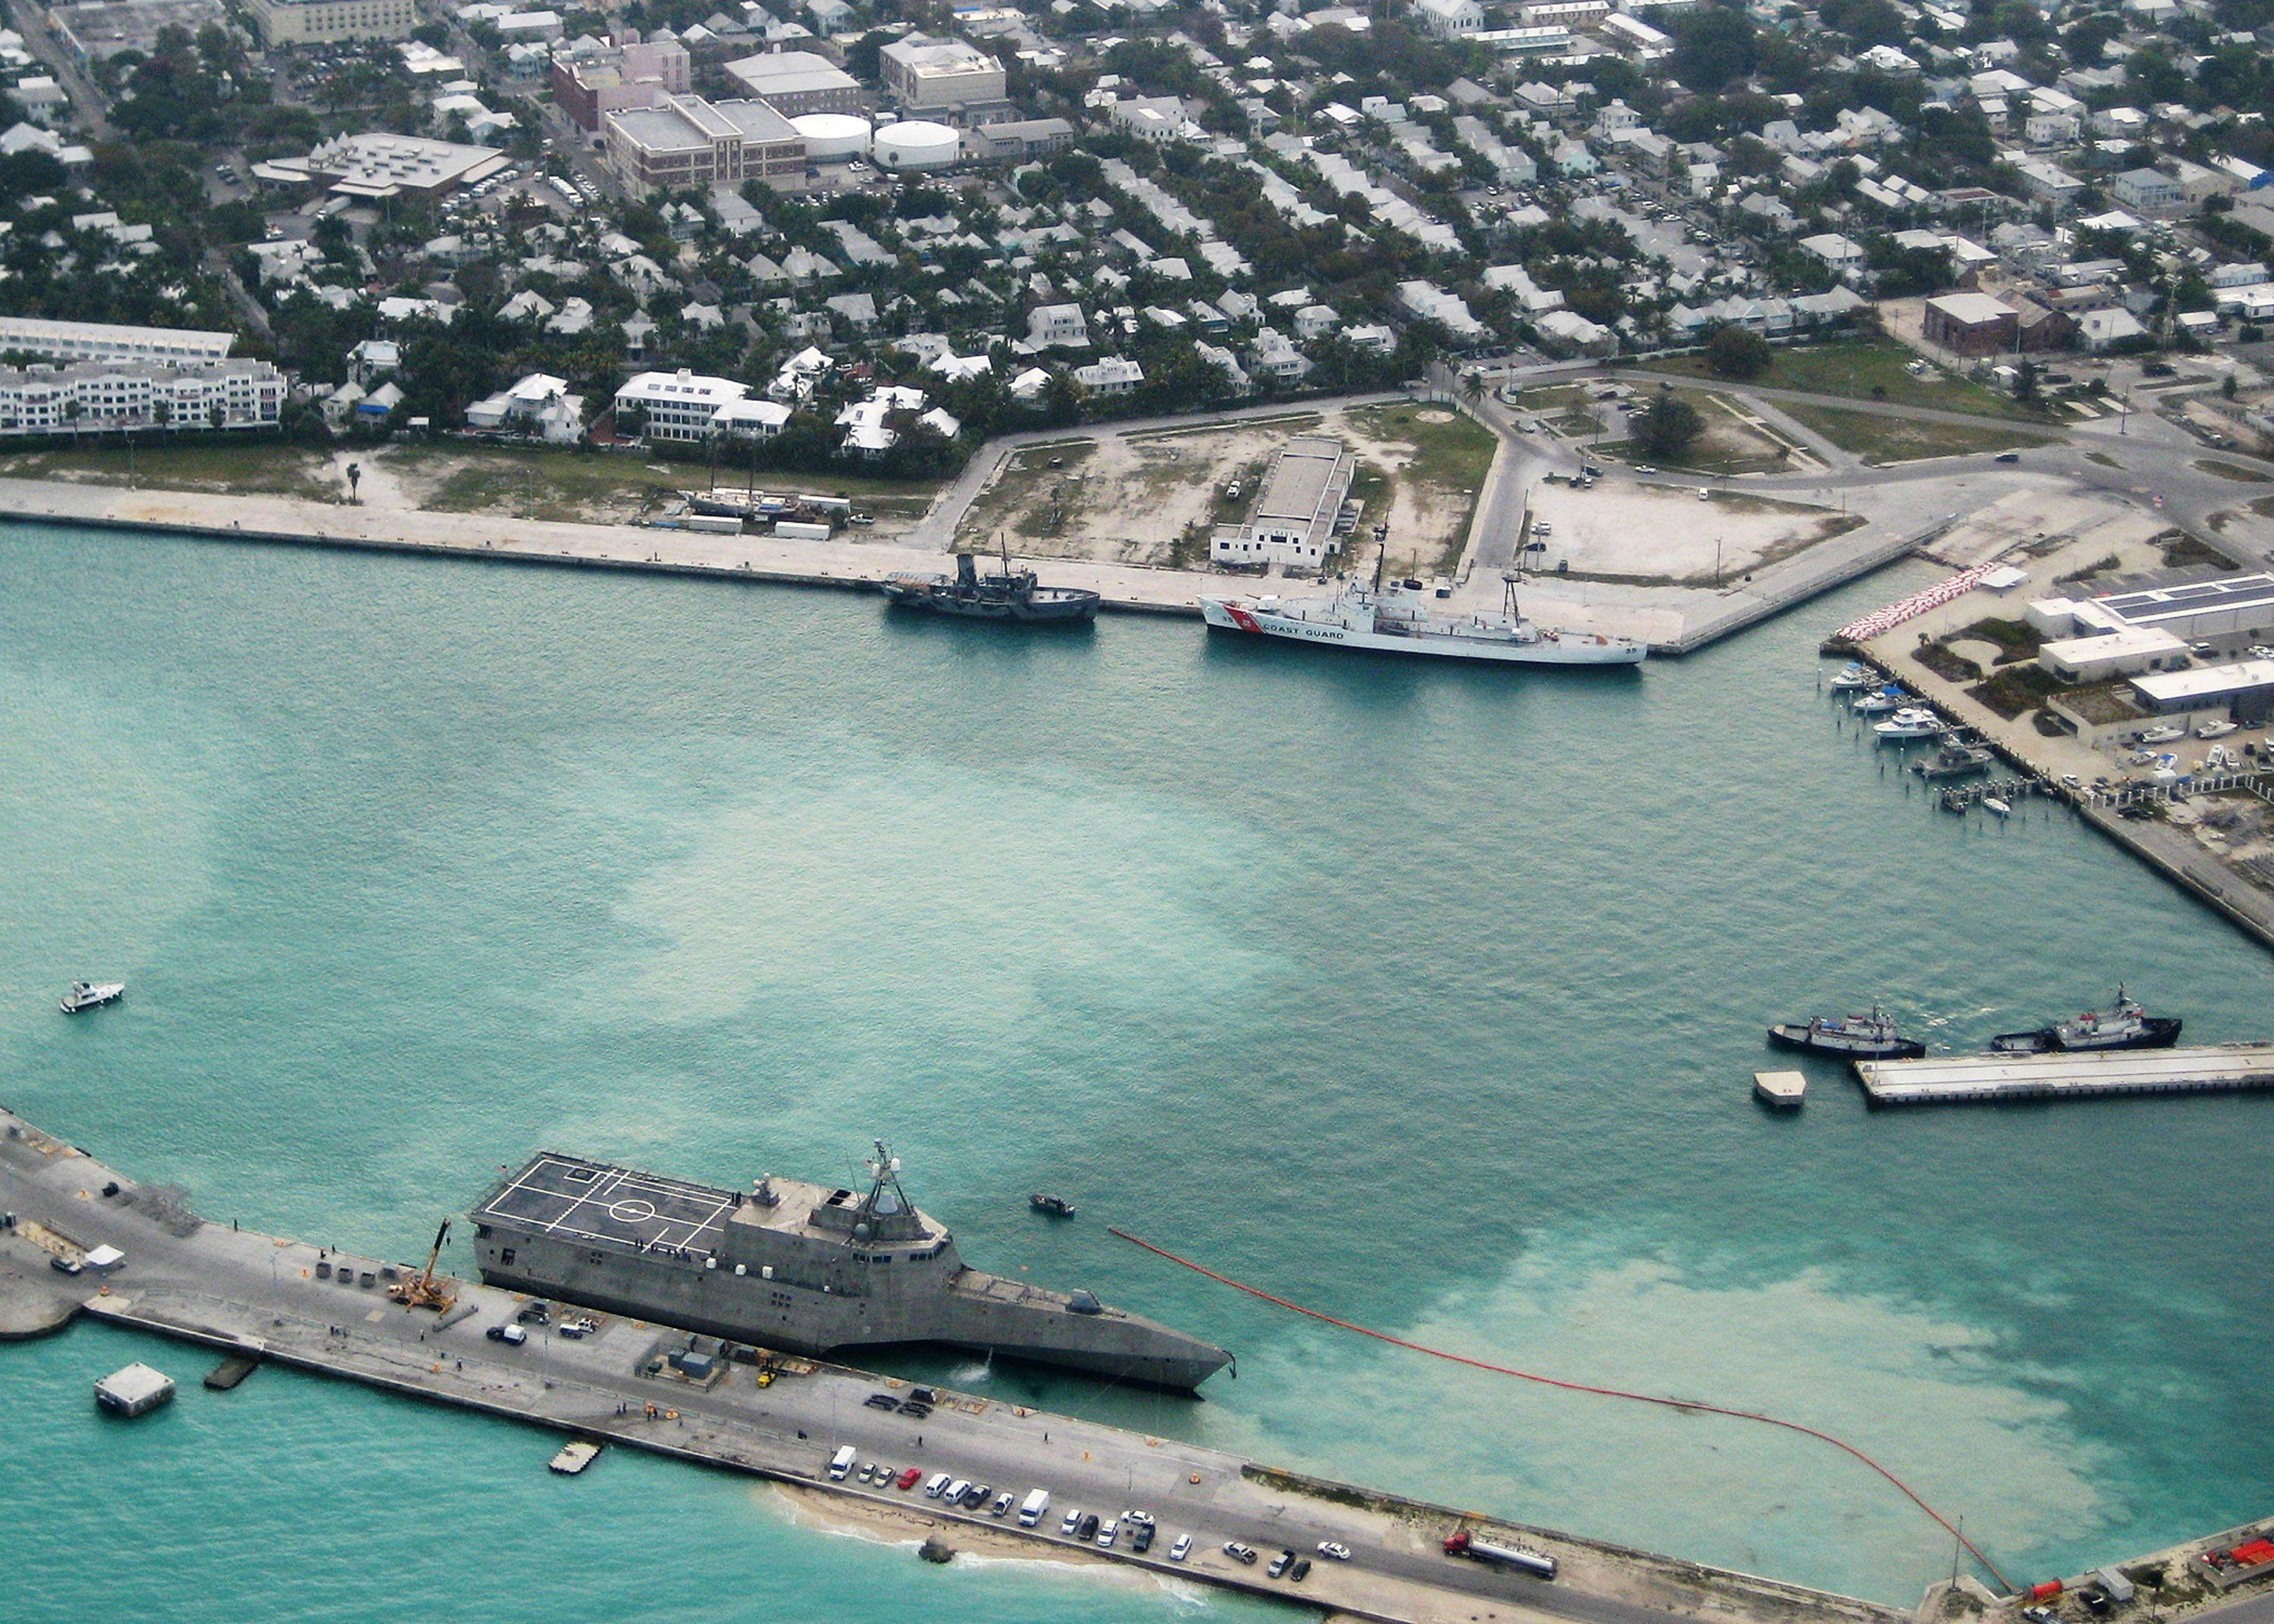 Risingsea level rises could mean that tidal flooding will become a daily occurrence for some U.S. military installation